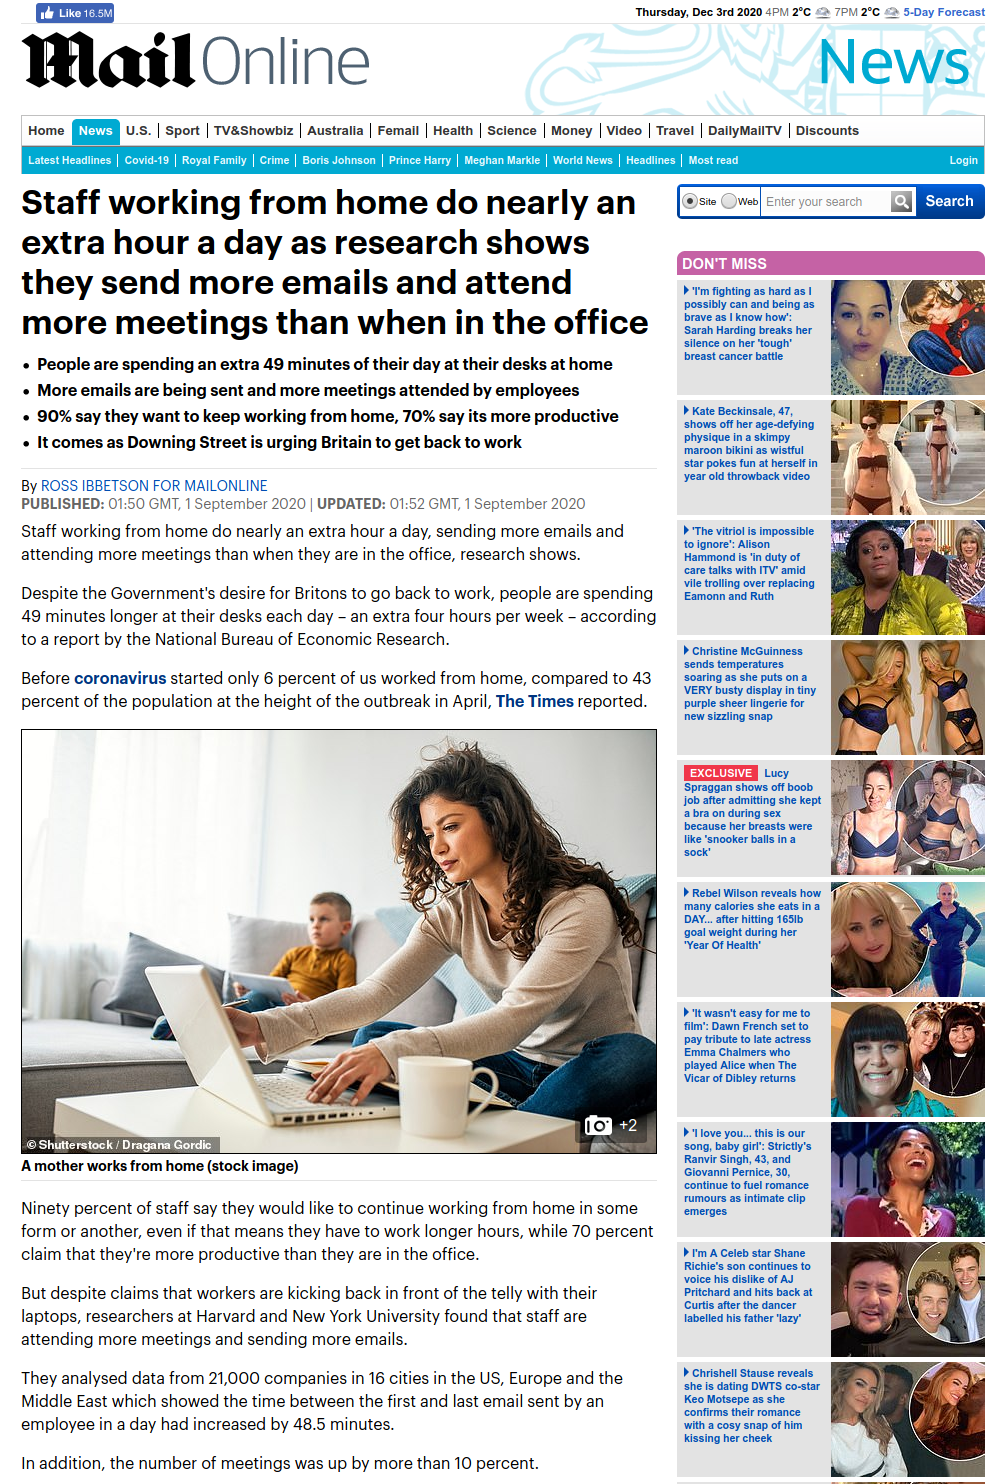 Daily Mail screenshot of the same stock image used